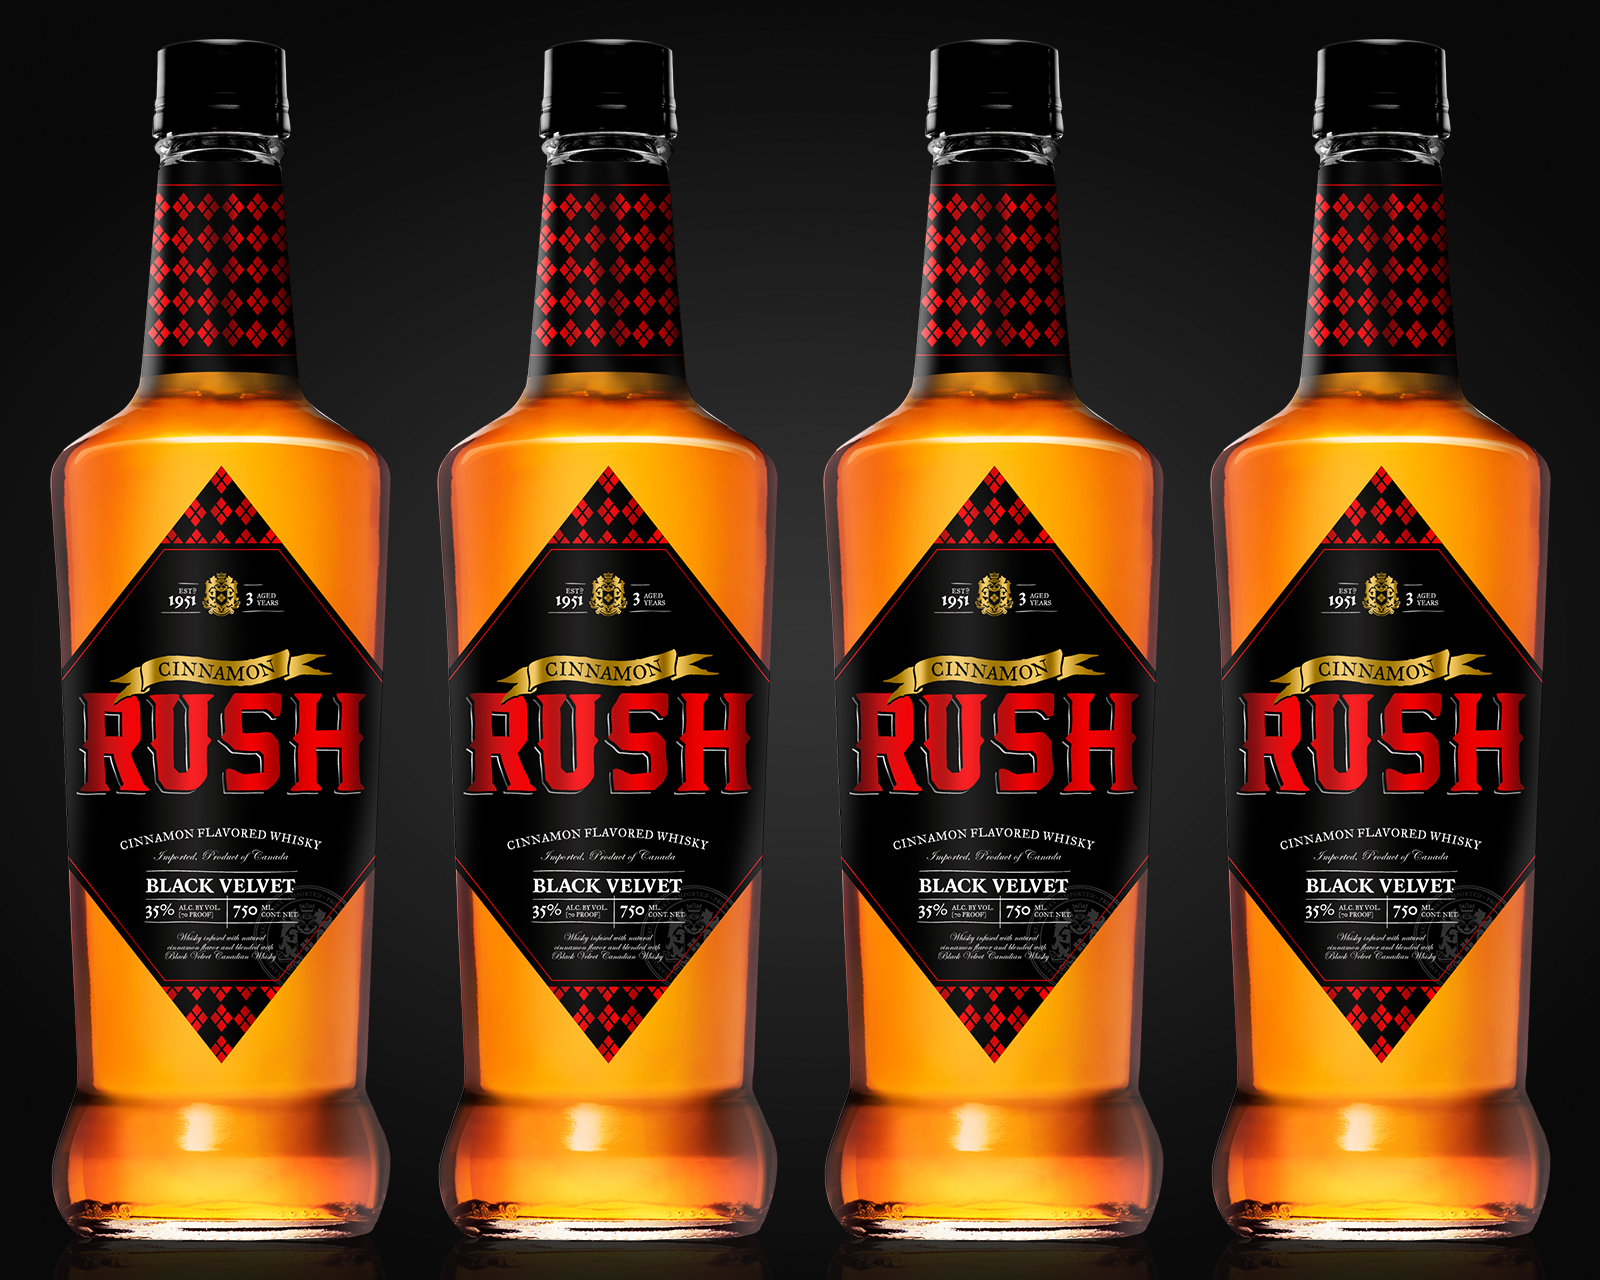 Whisky label design with custom typography